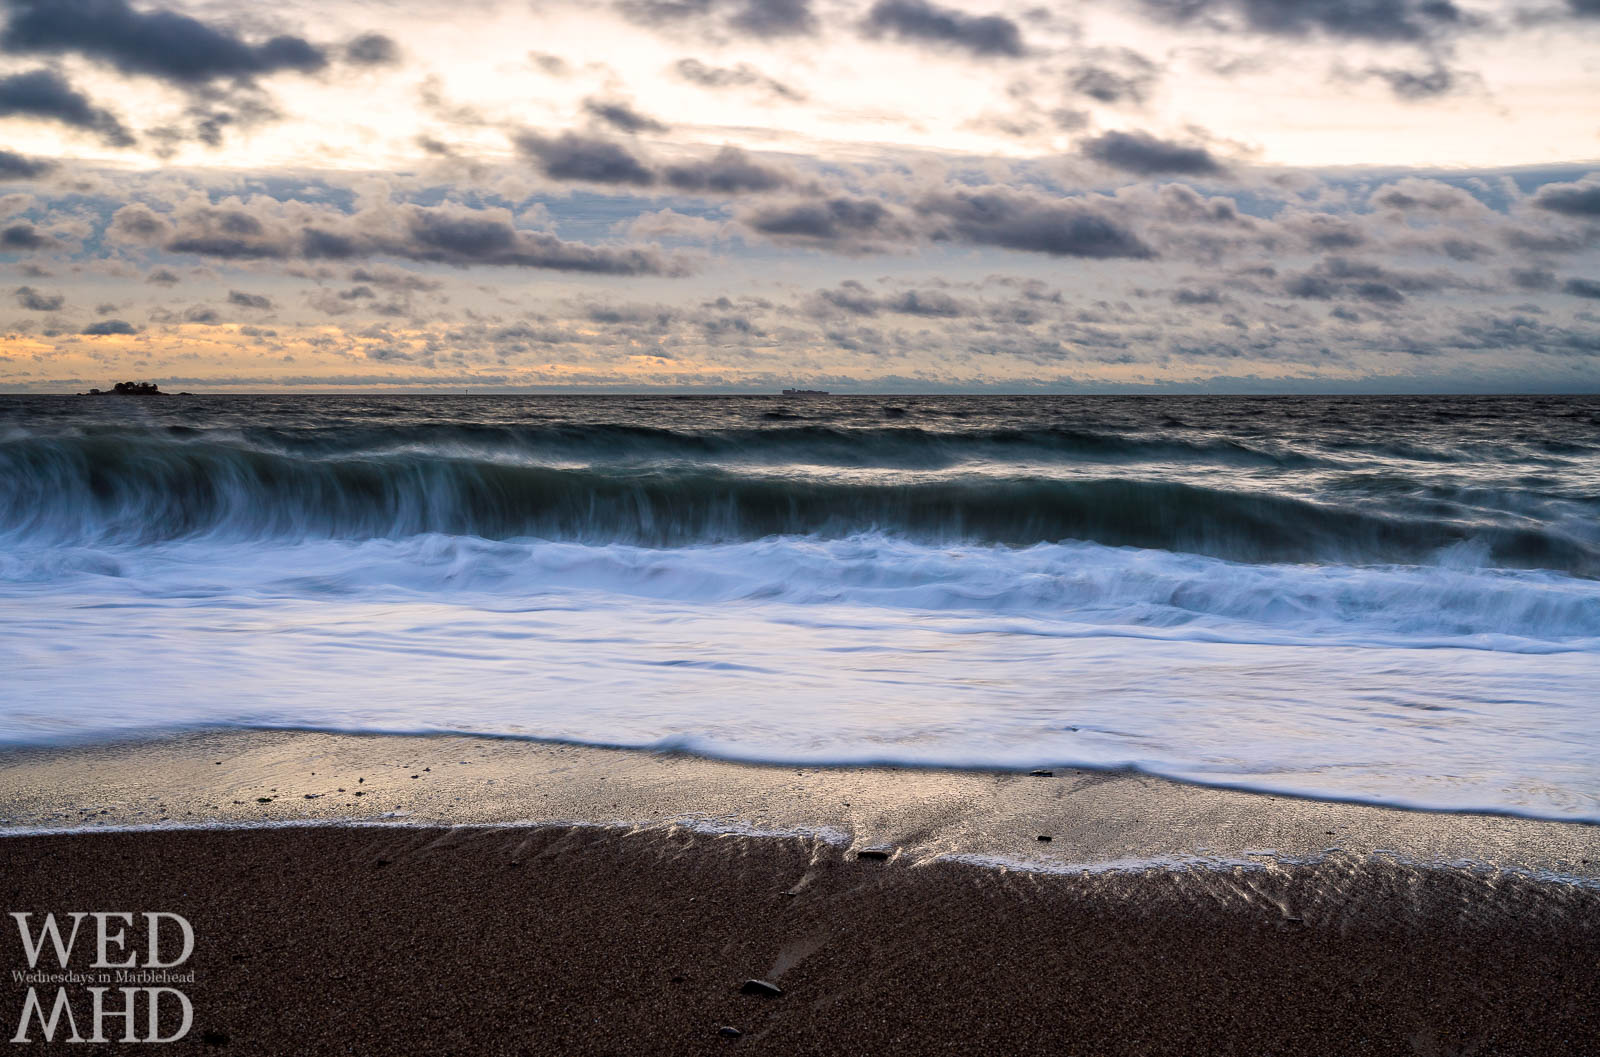 A long exposure captures the arc of an ocean wave coming ashore at Devereux Beach on New Years Day